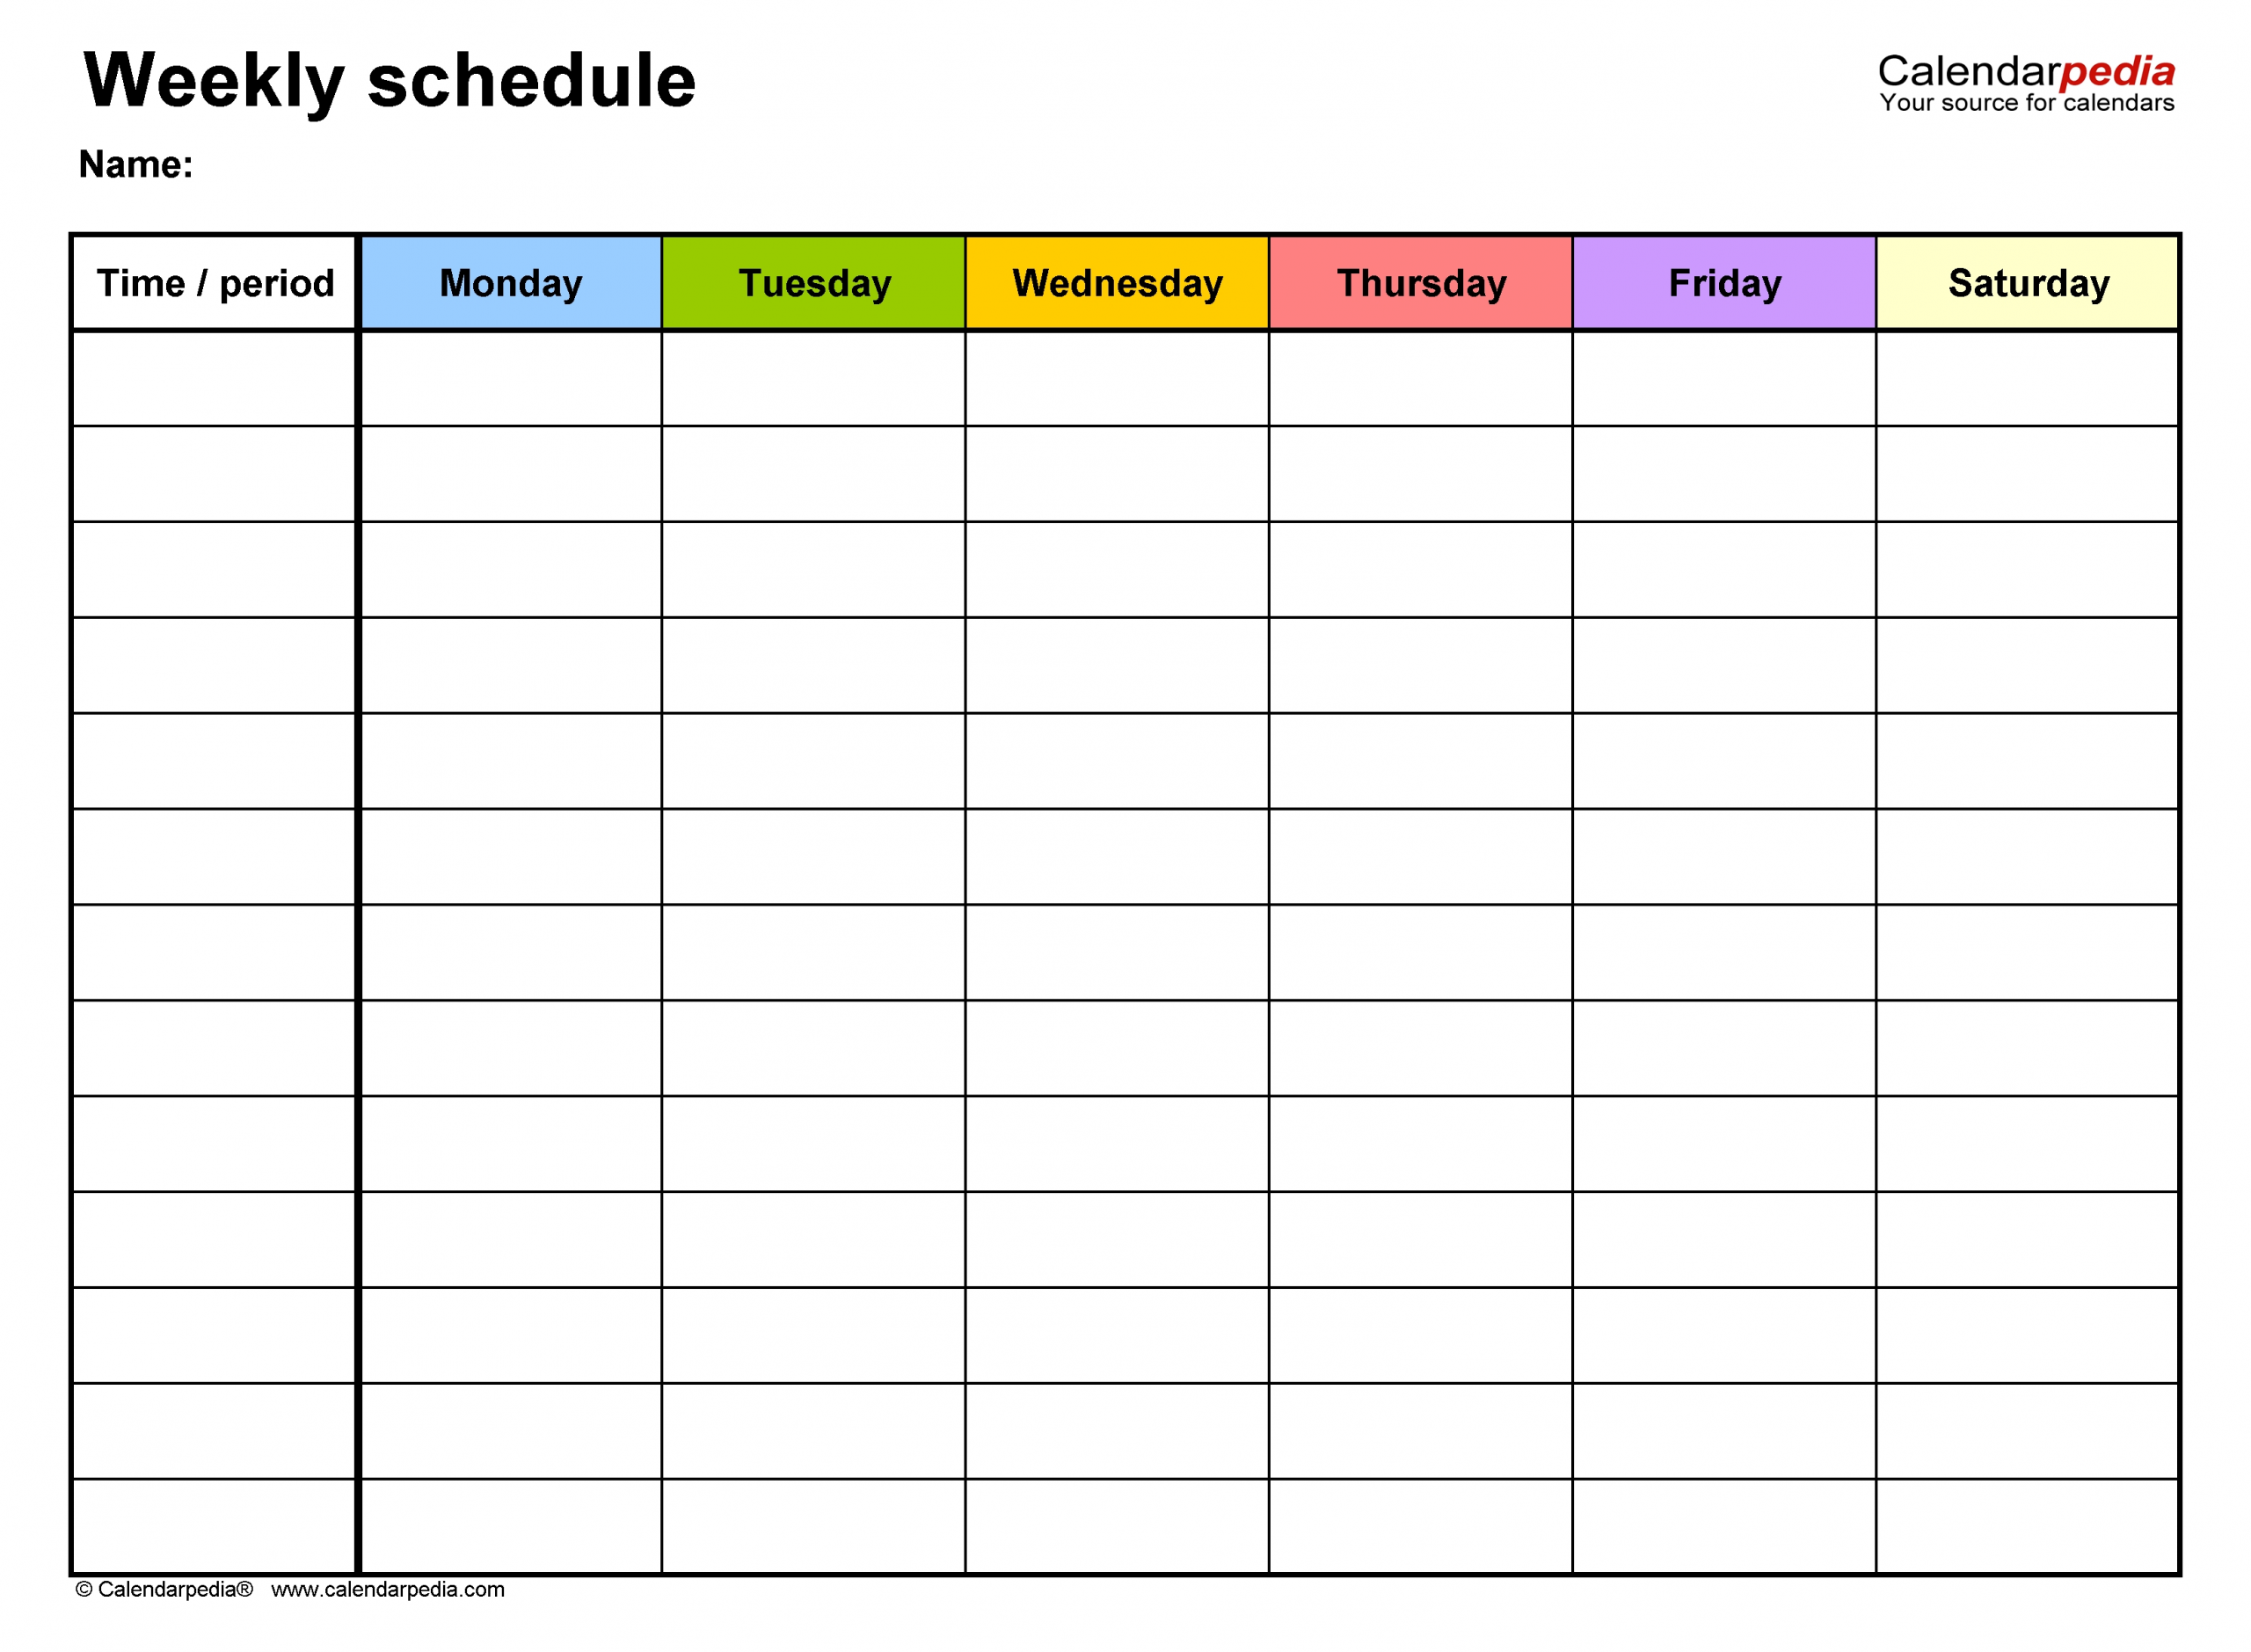 Get Editable Daily Calendar With Time Slots